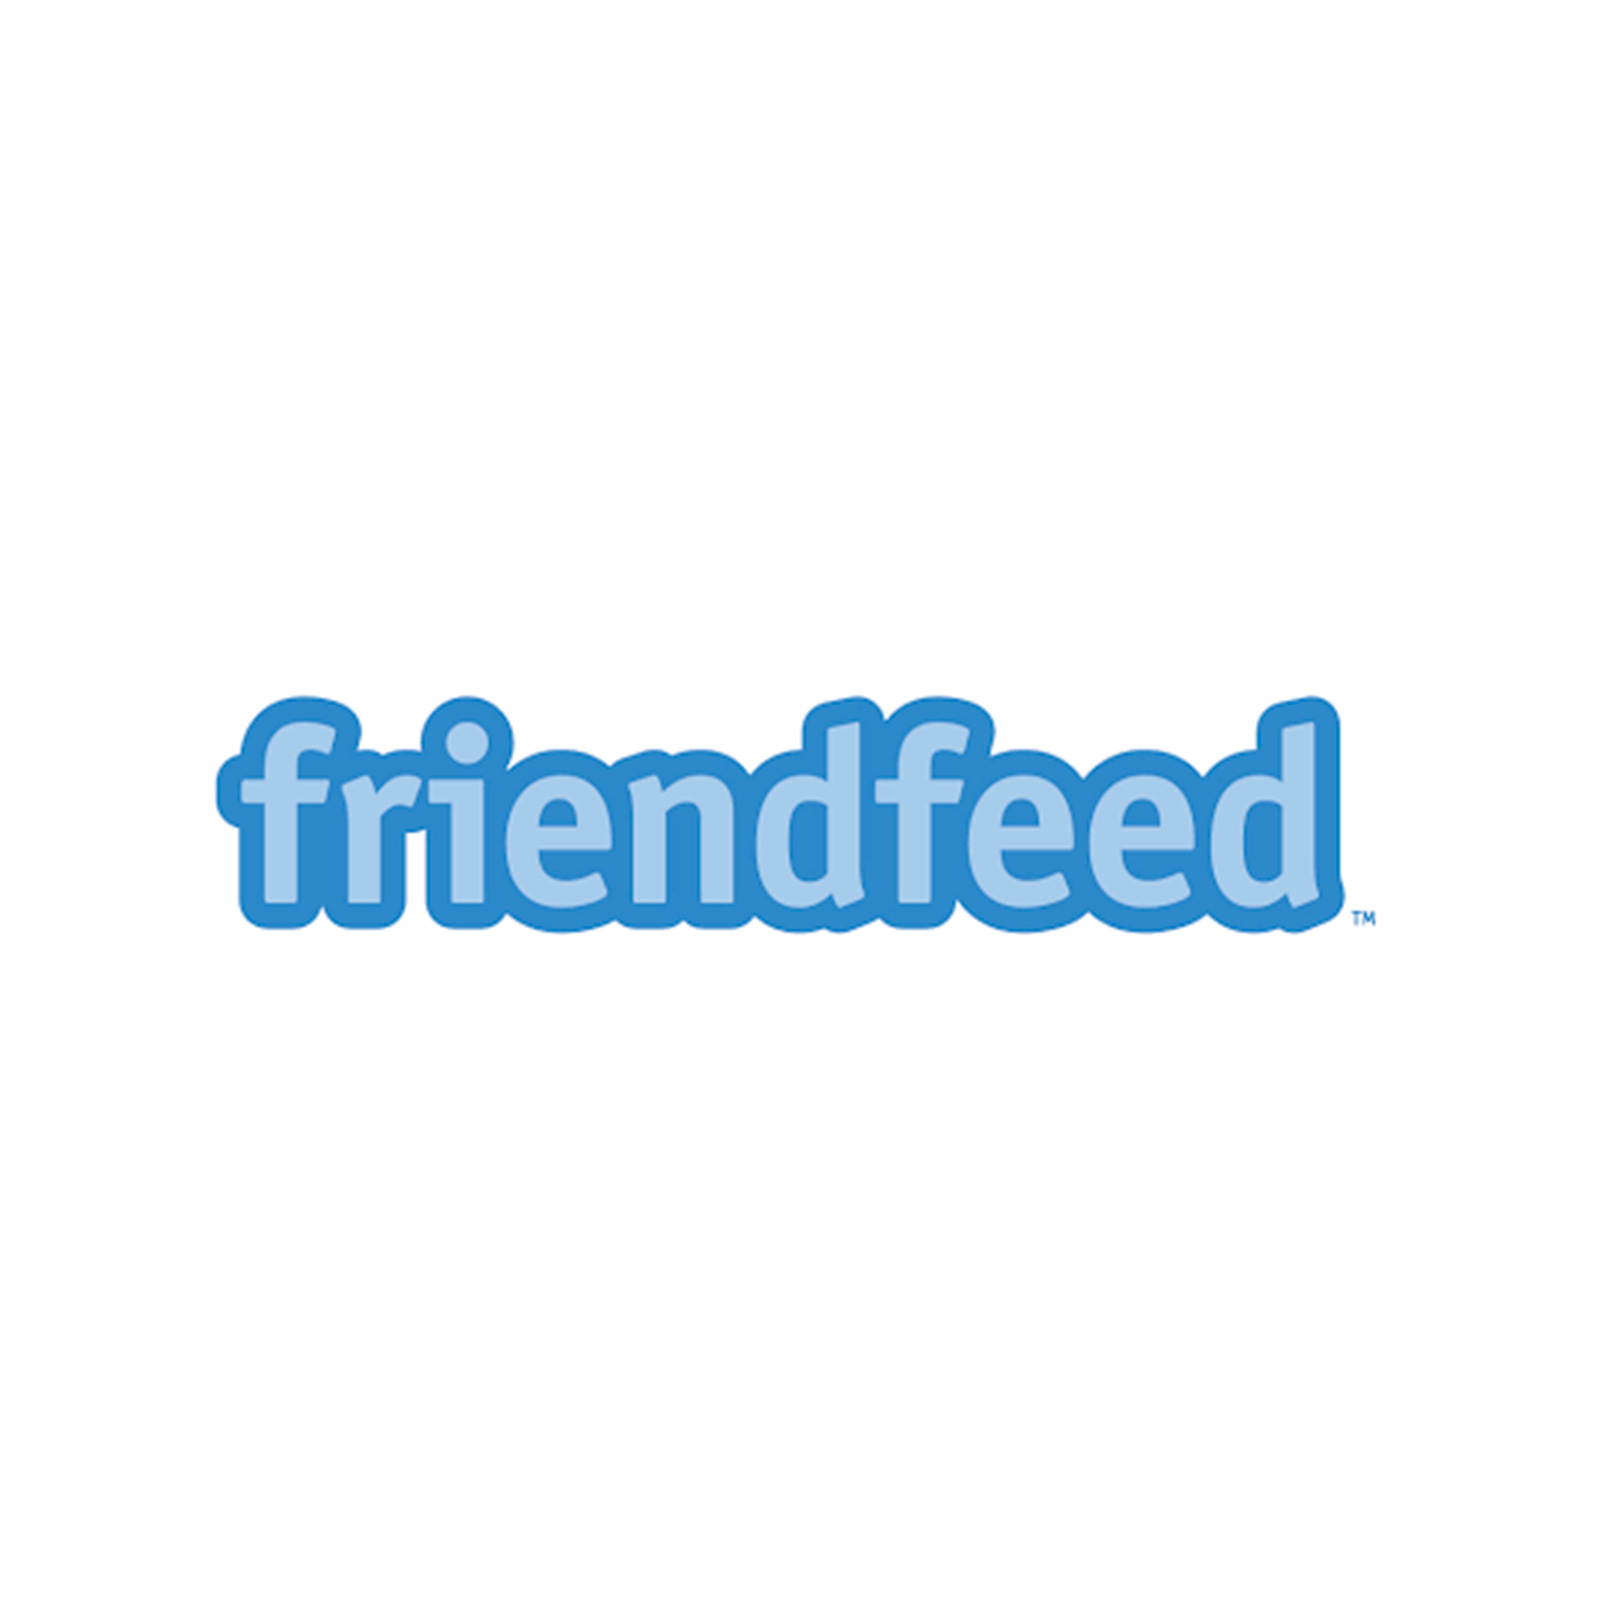 FriendFeed was a real-time feed aggregator that consolidated updates from social media and social networking websites, social bookmarking websites, blogs and microblogging updates, as well as any type of RSS/Atom feed